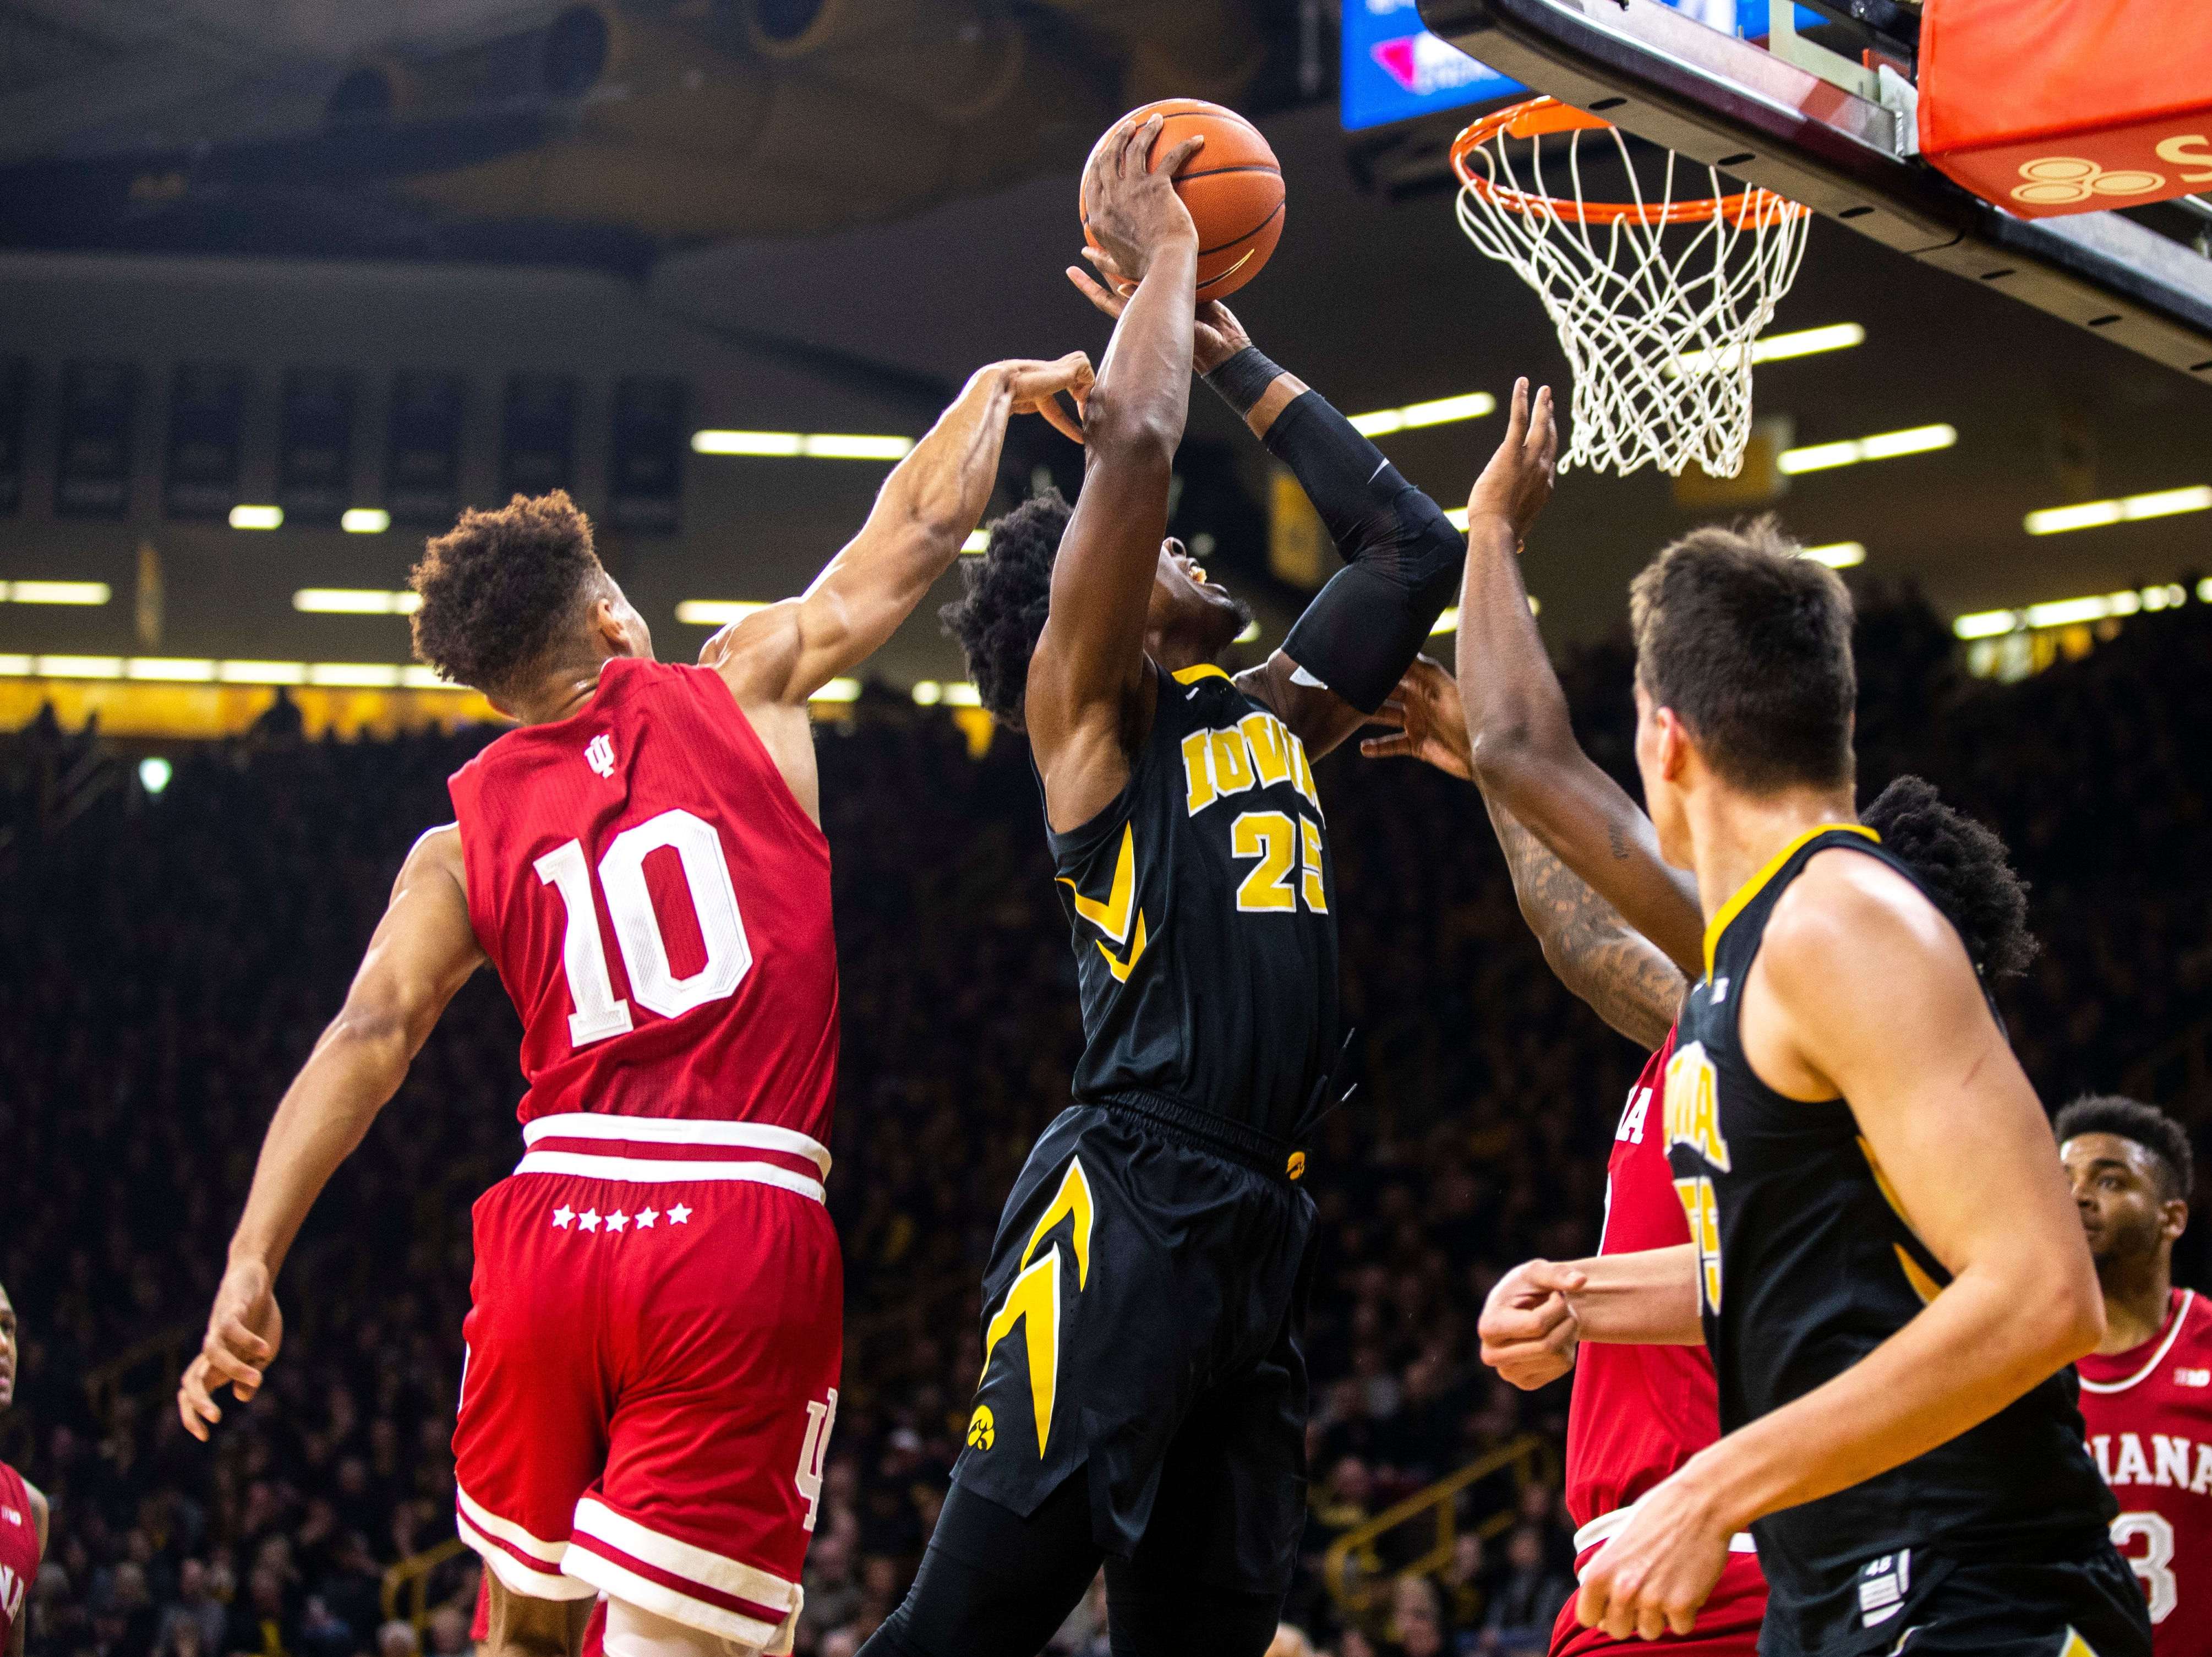 Iowa forward Tyler Cook (25) drives to the basket while Indiana guard Rob Phinisee (10) defends during a NCAA Big Ten Conference men's basketball game on Friday, Feb. 22, 2019 at Carver-Hawkeye Arena in Iowa City, Iowa.